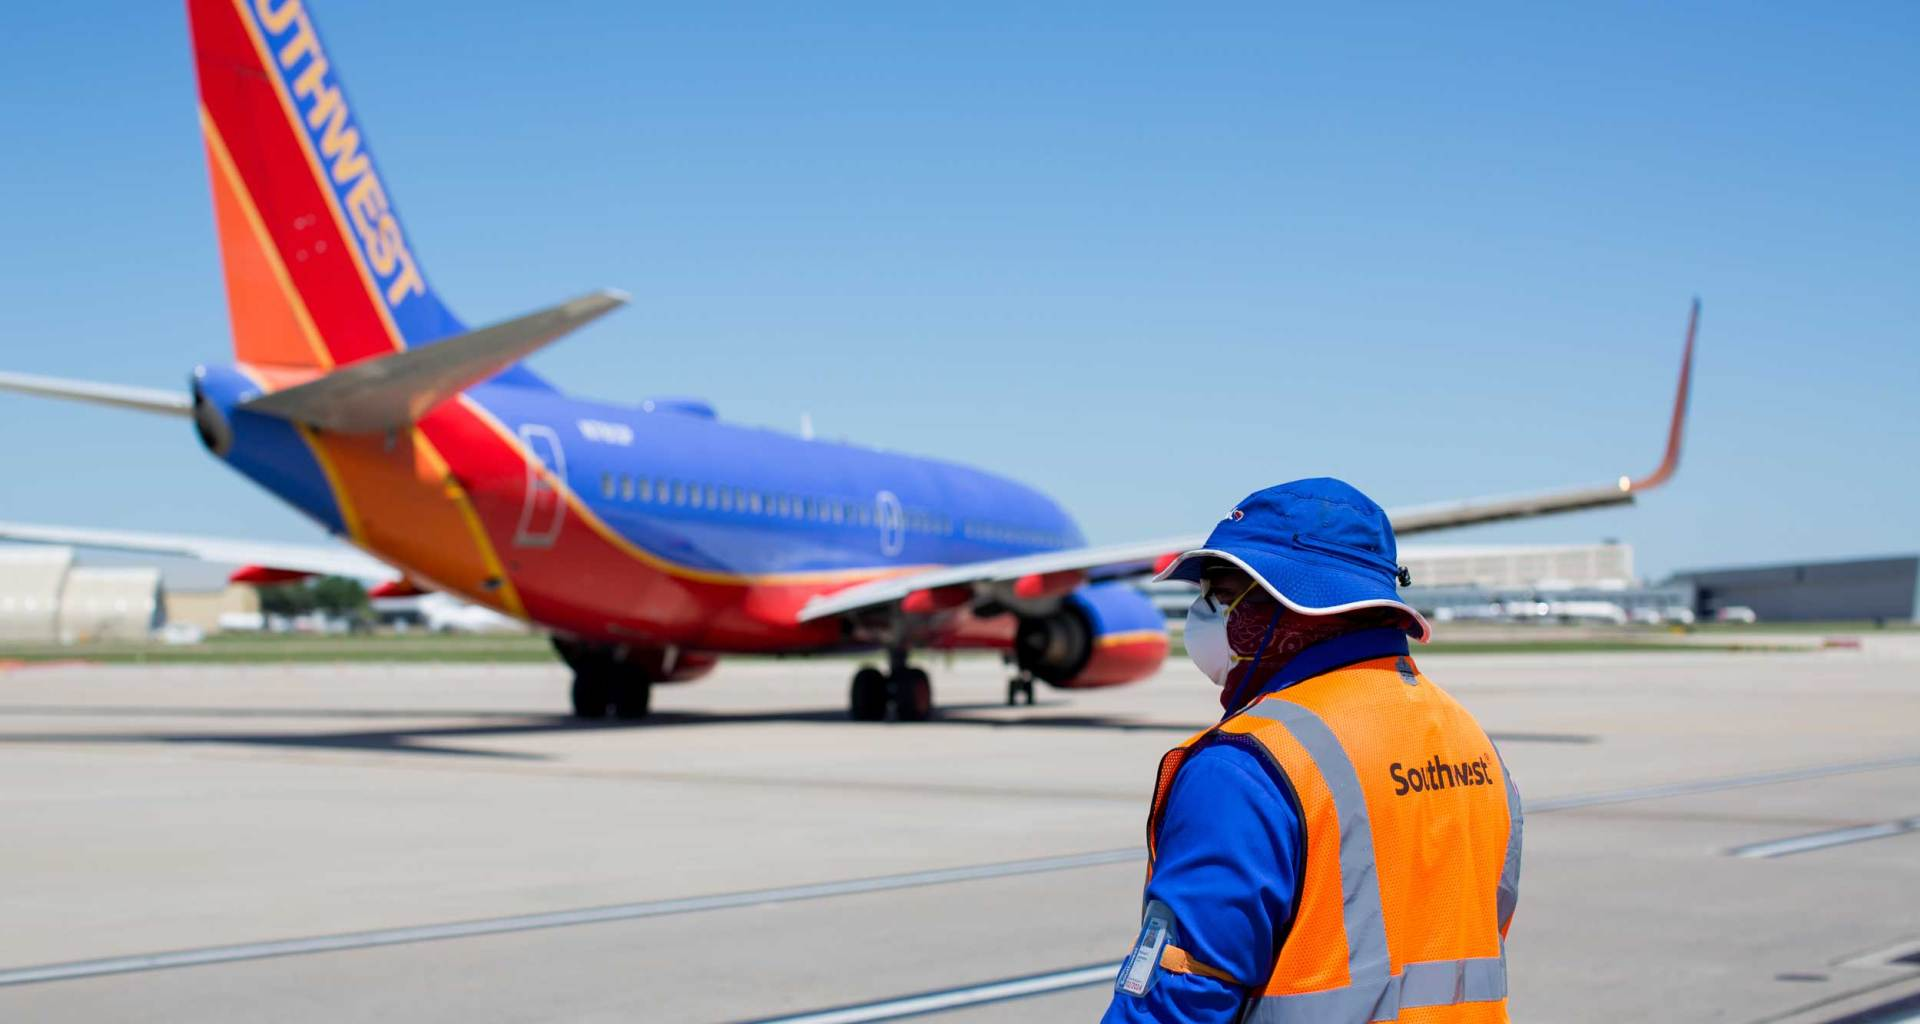 Airline employee watches from tarmac as Southwest Airlines jet taxis away.